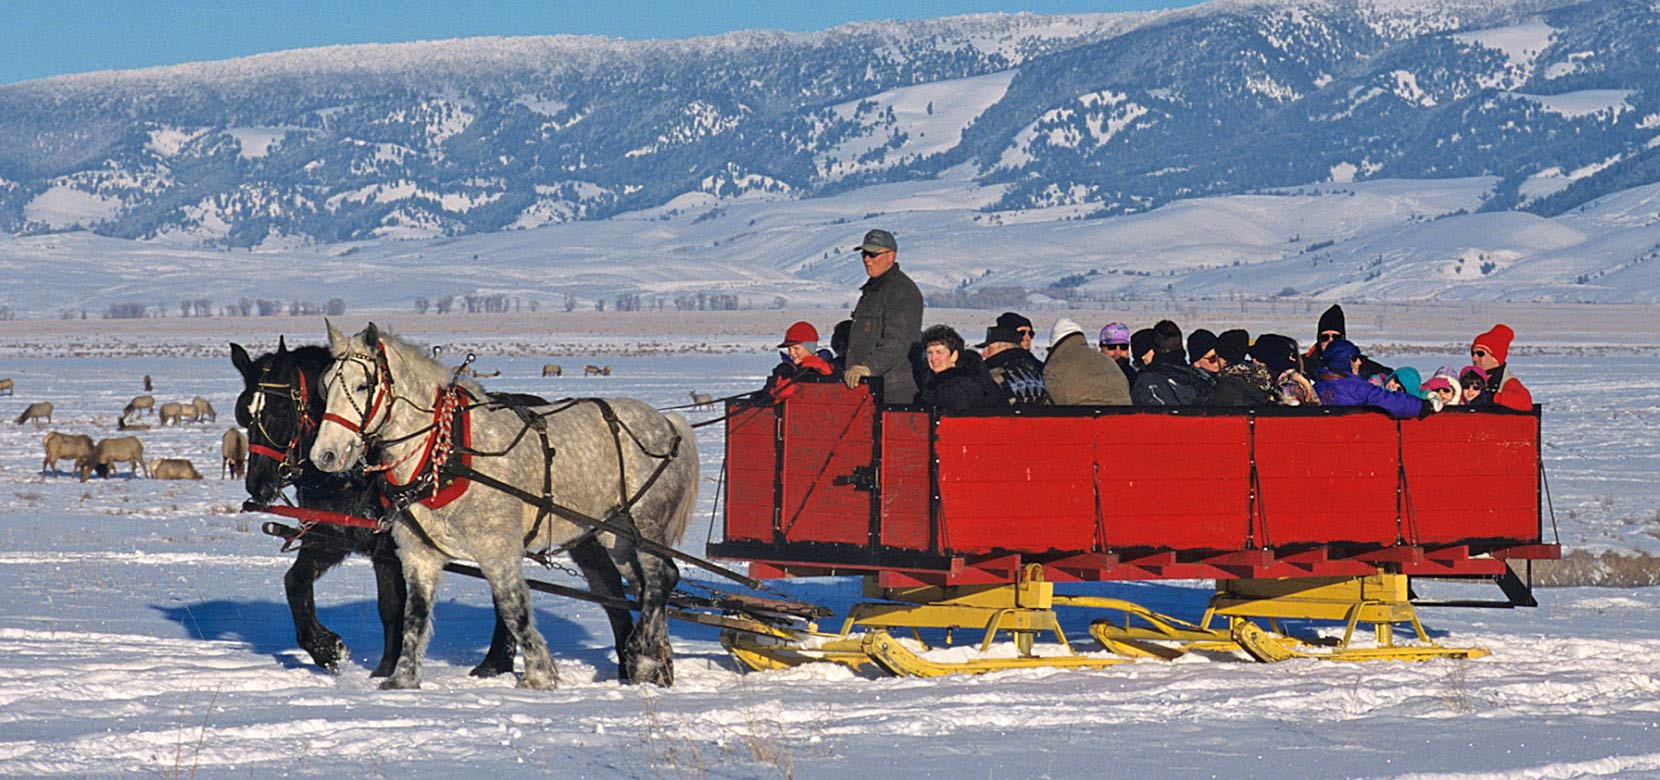 Jackson-hole-wildlife-tour-sleigh-rides.